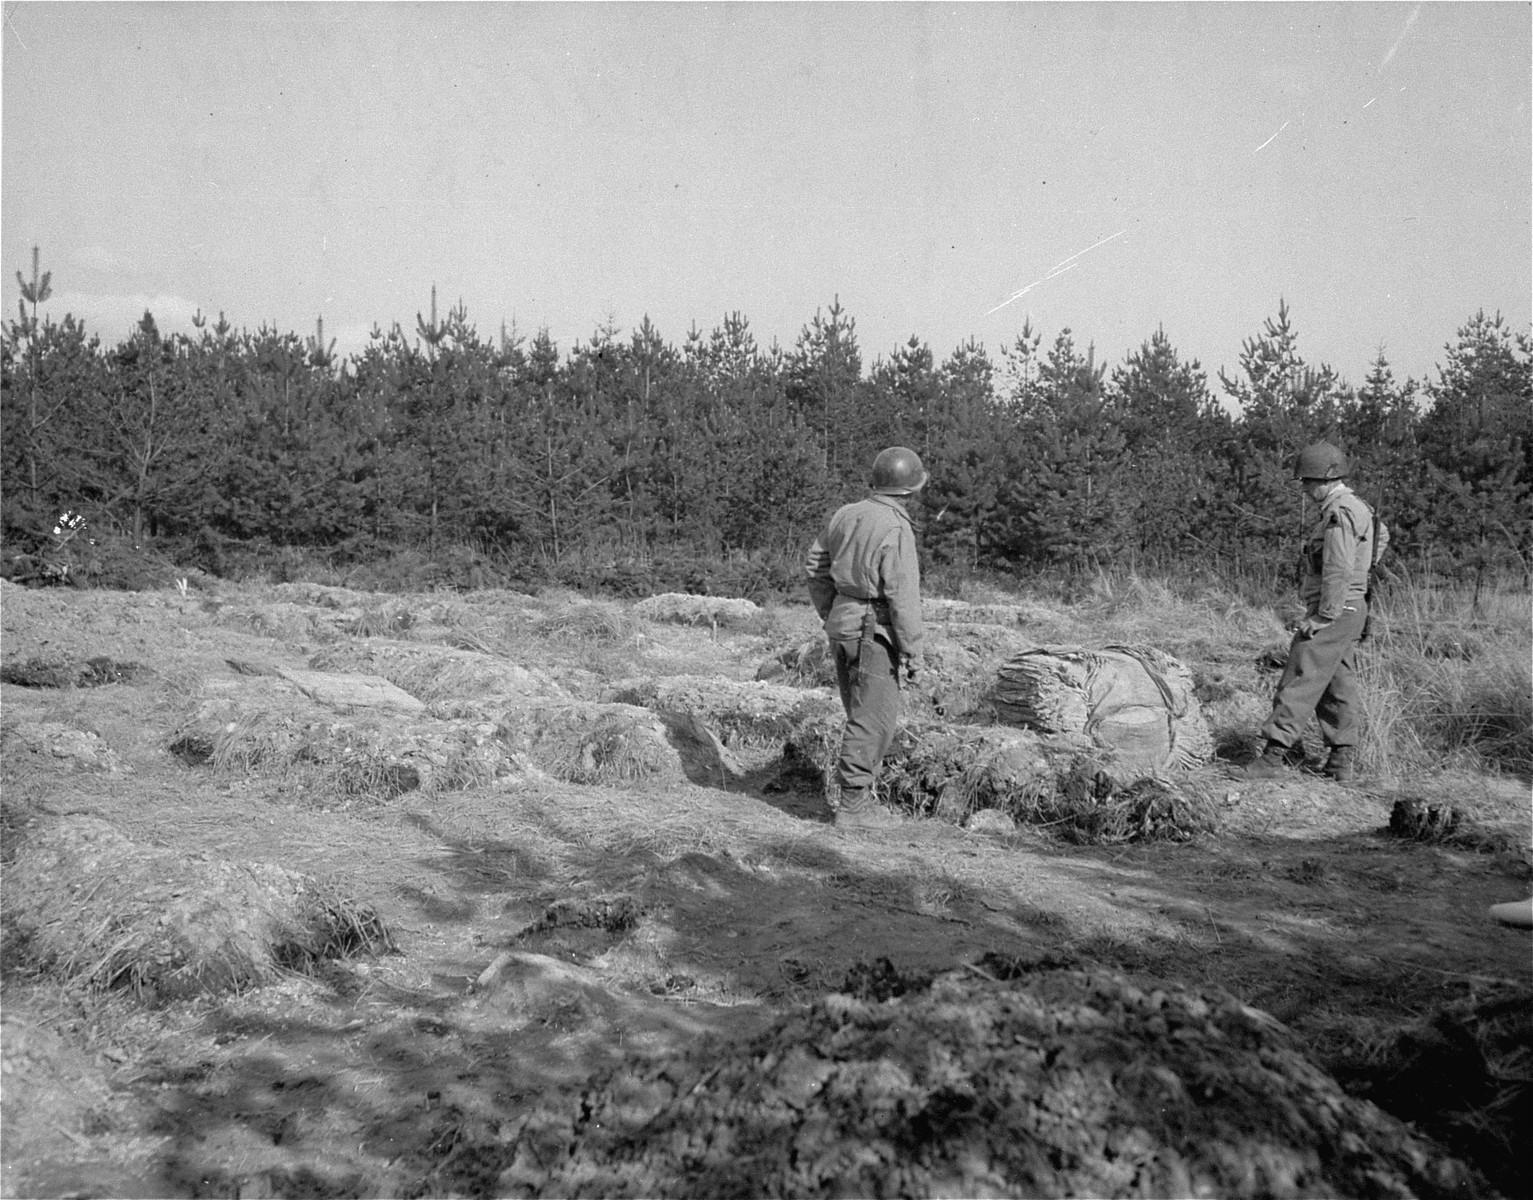 Two U.S. soldiers with the 9th Armored Division stand in the middle of a field of graves, near the Flossenbuerg concentration camp.